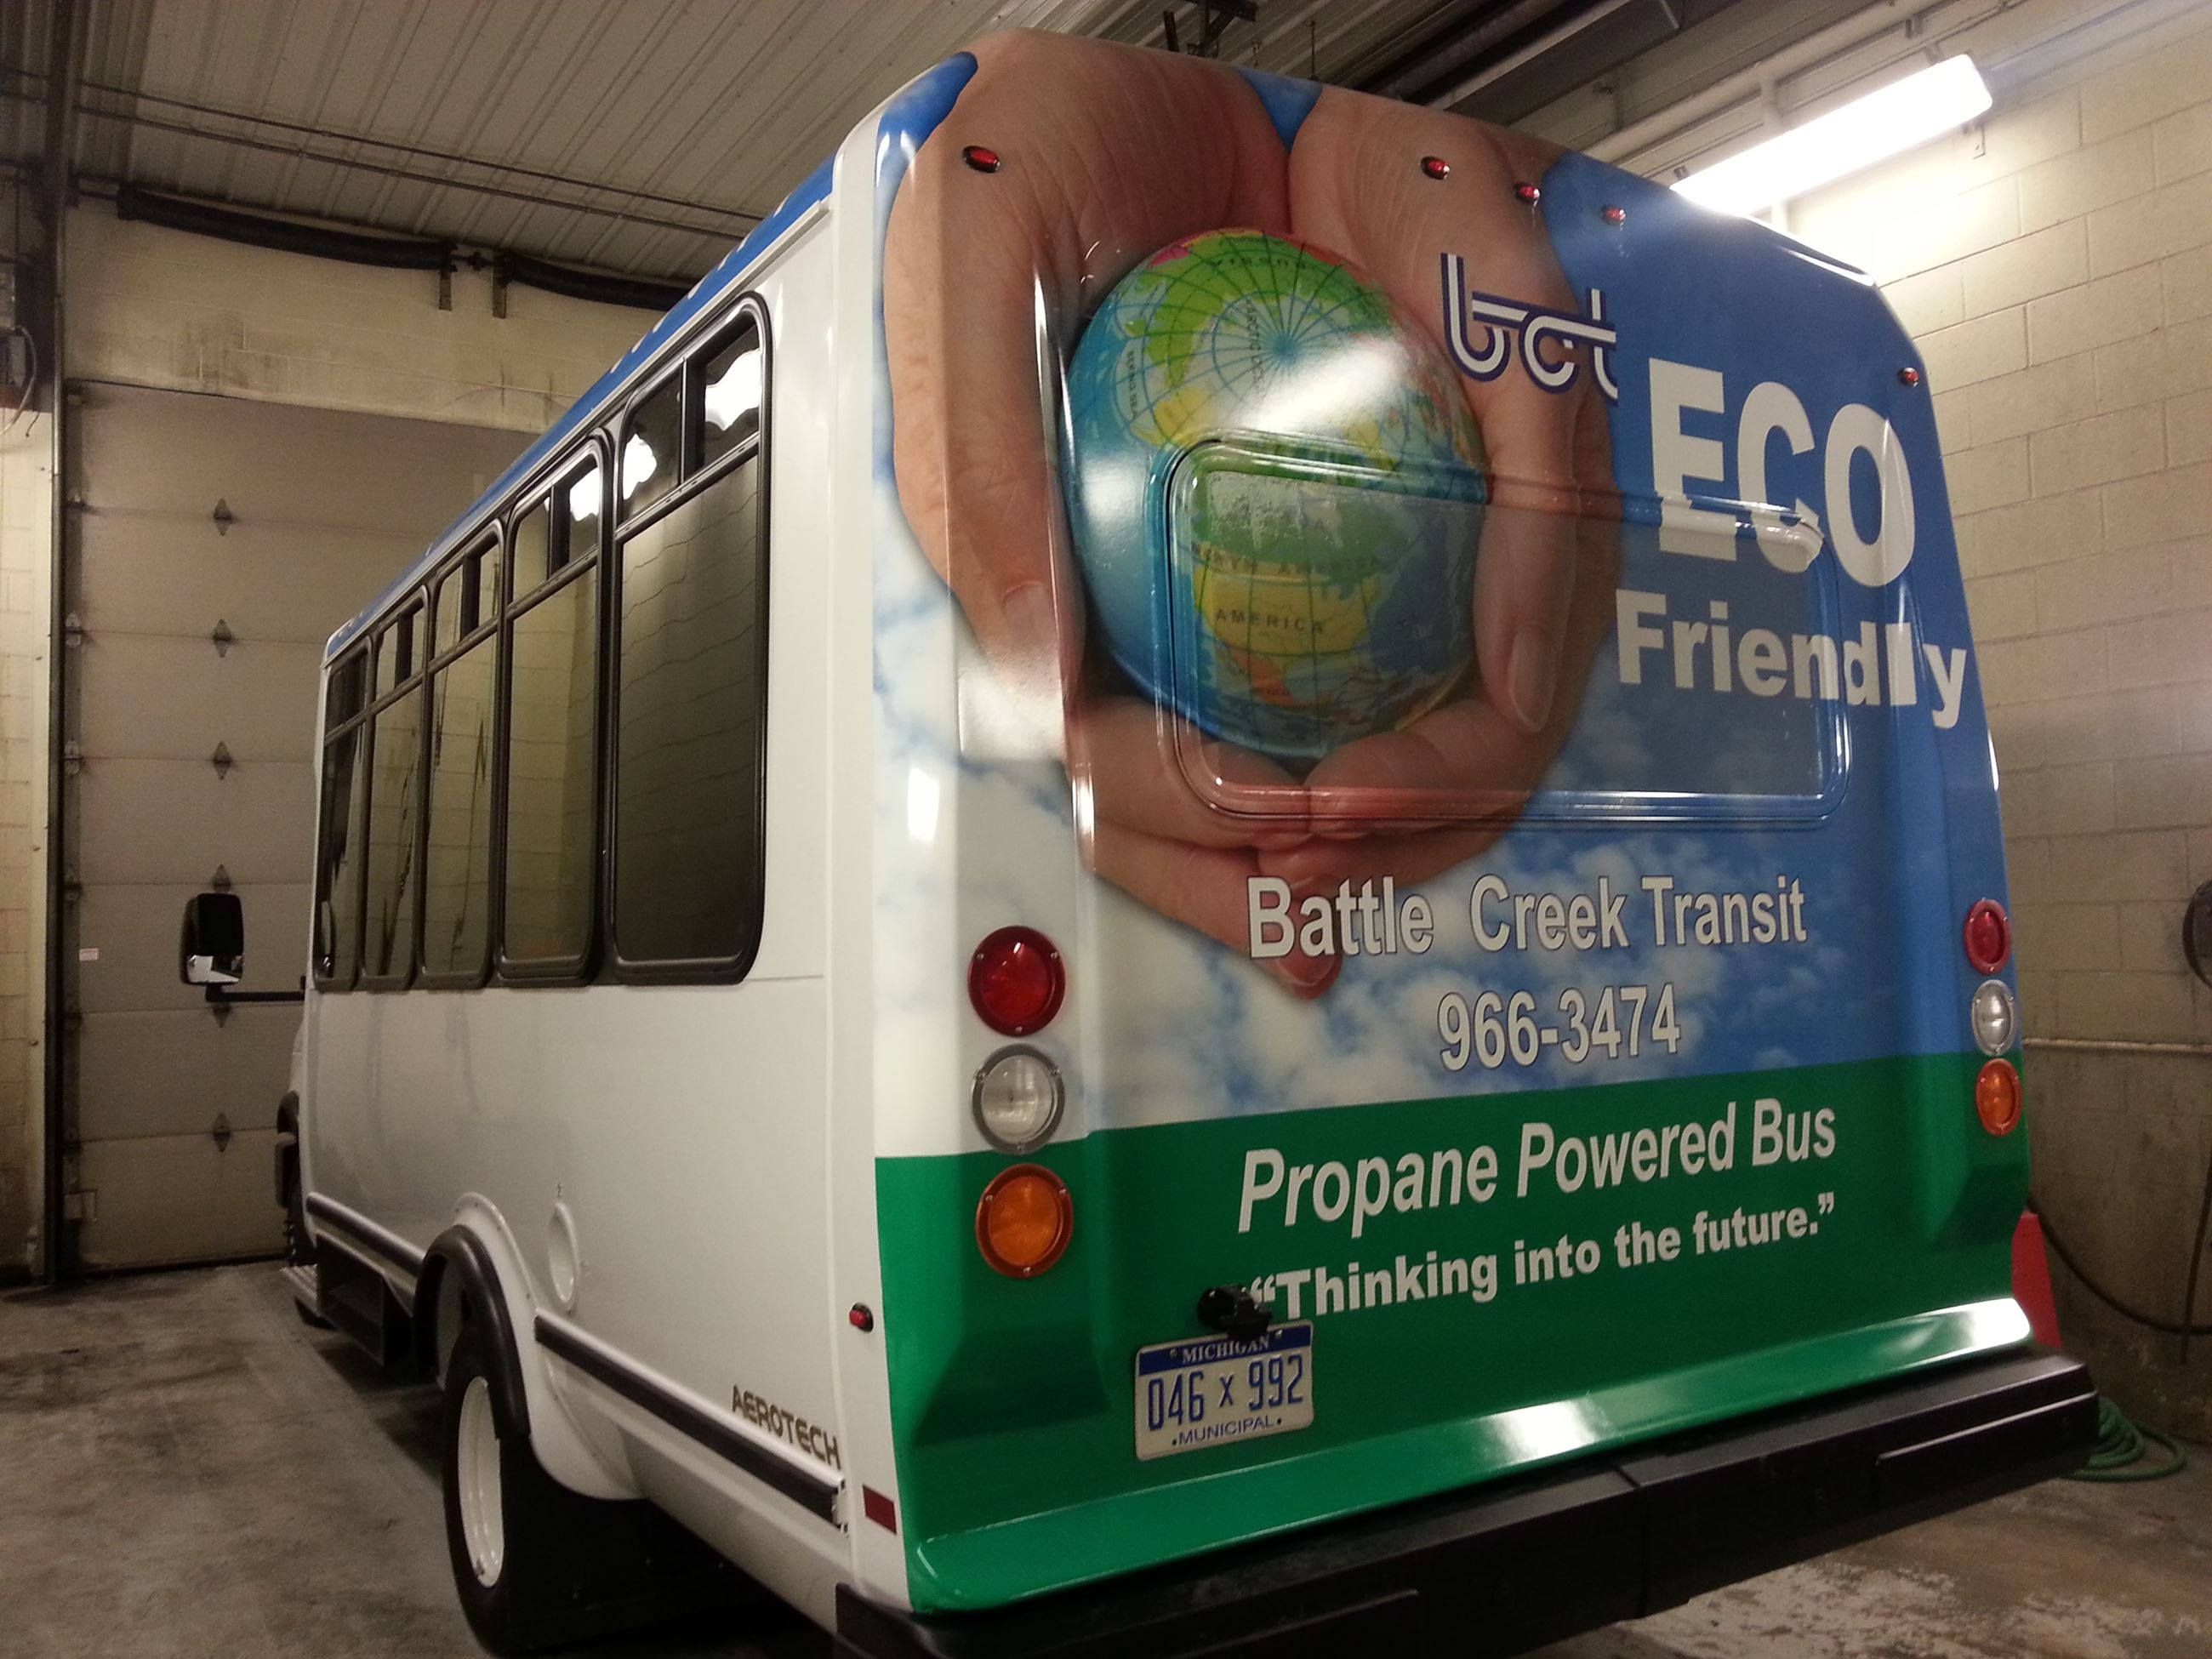 Eco Friendly bus